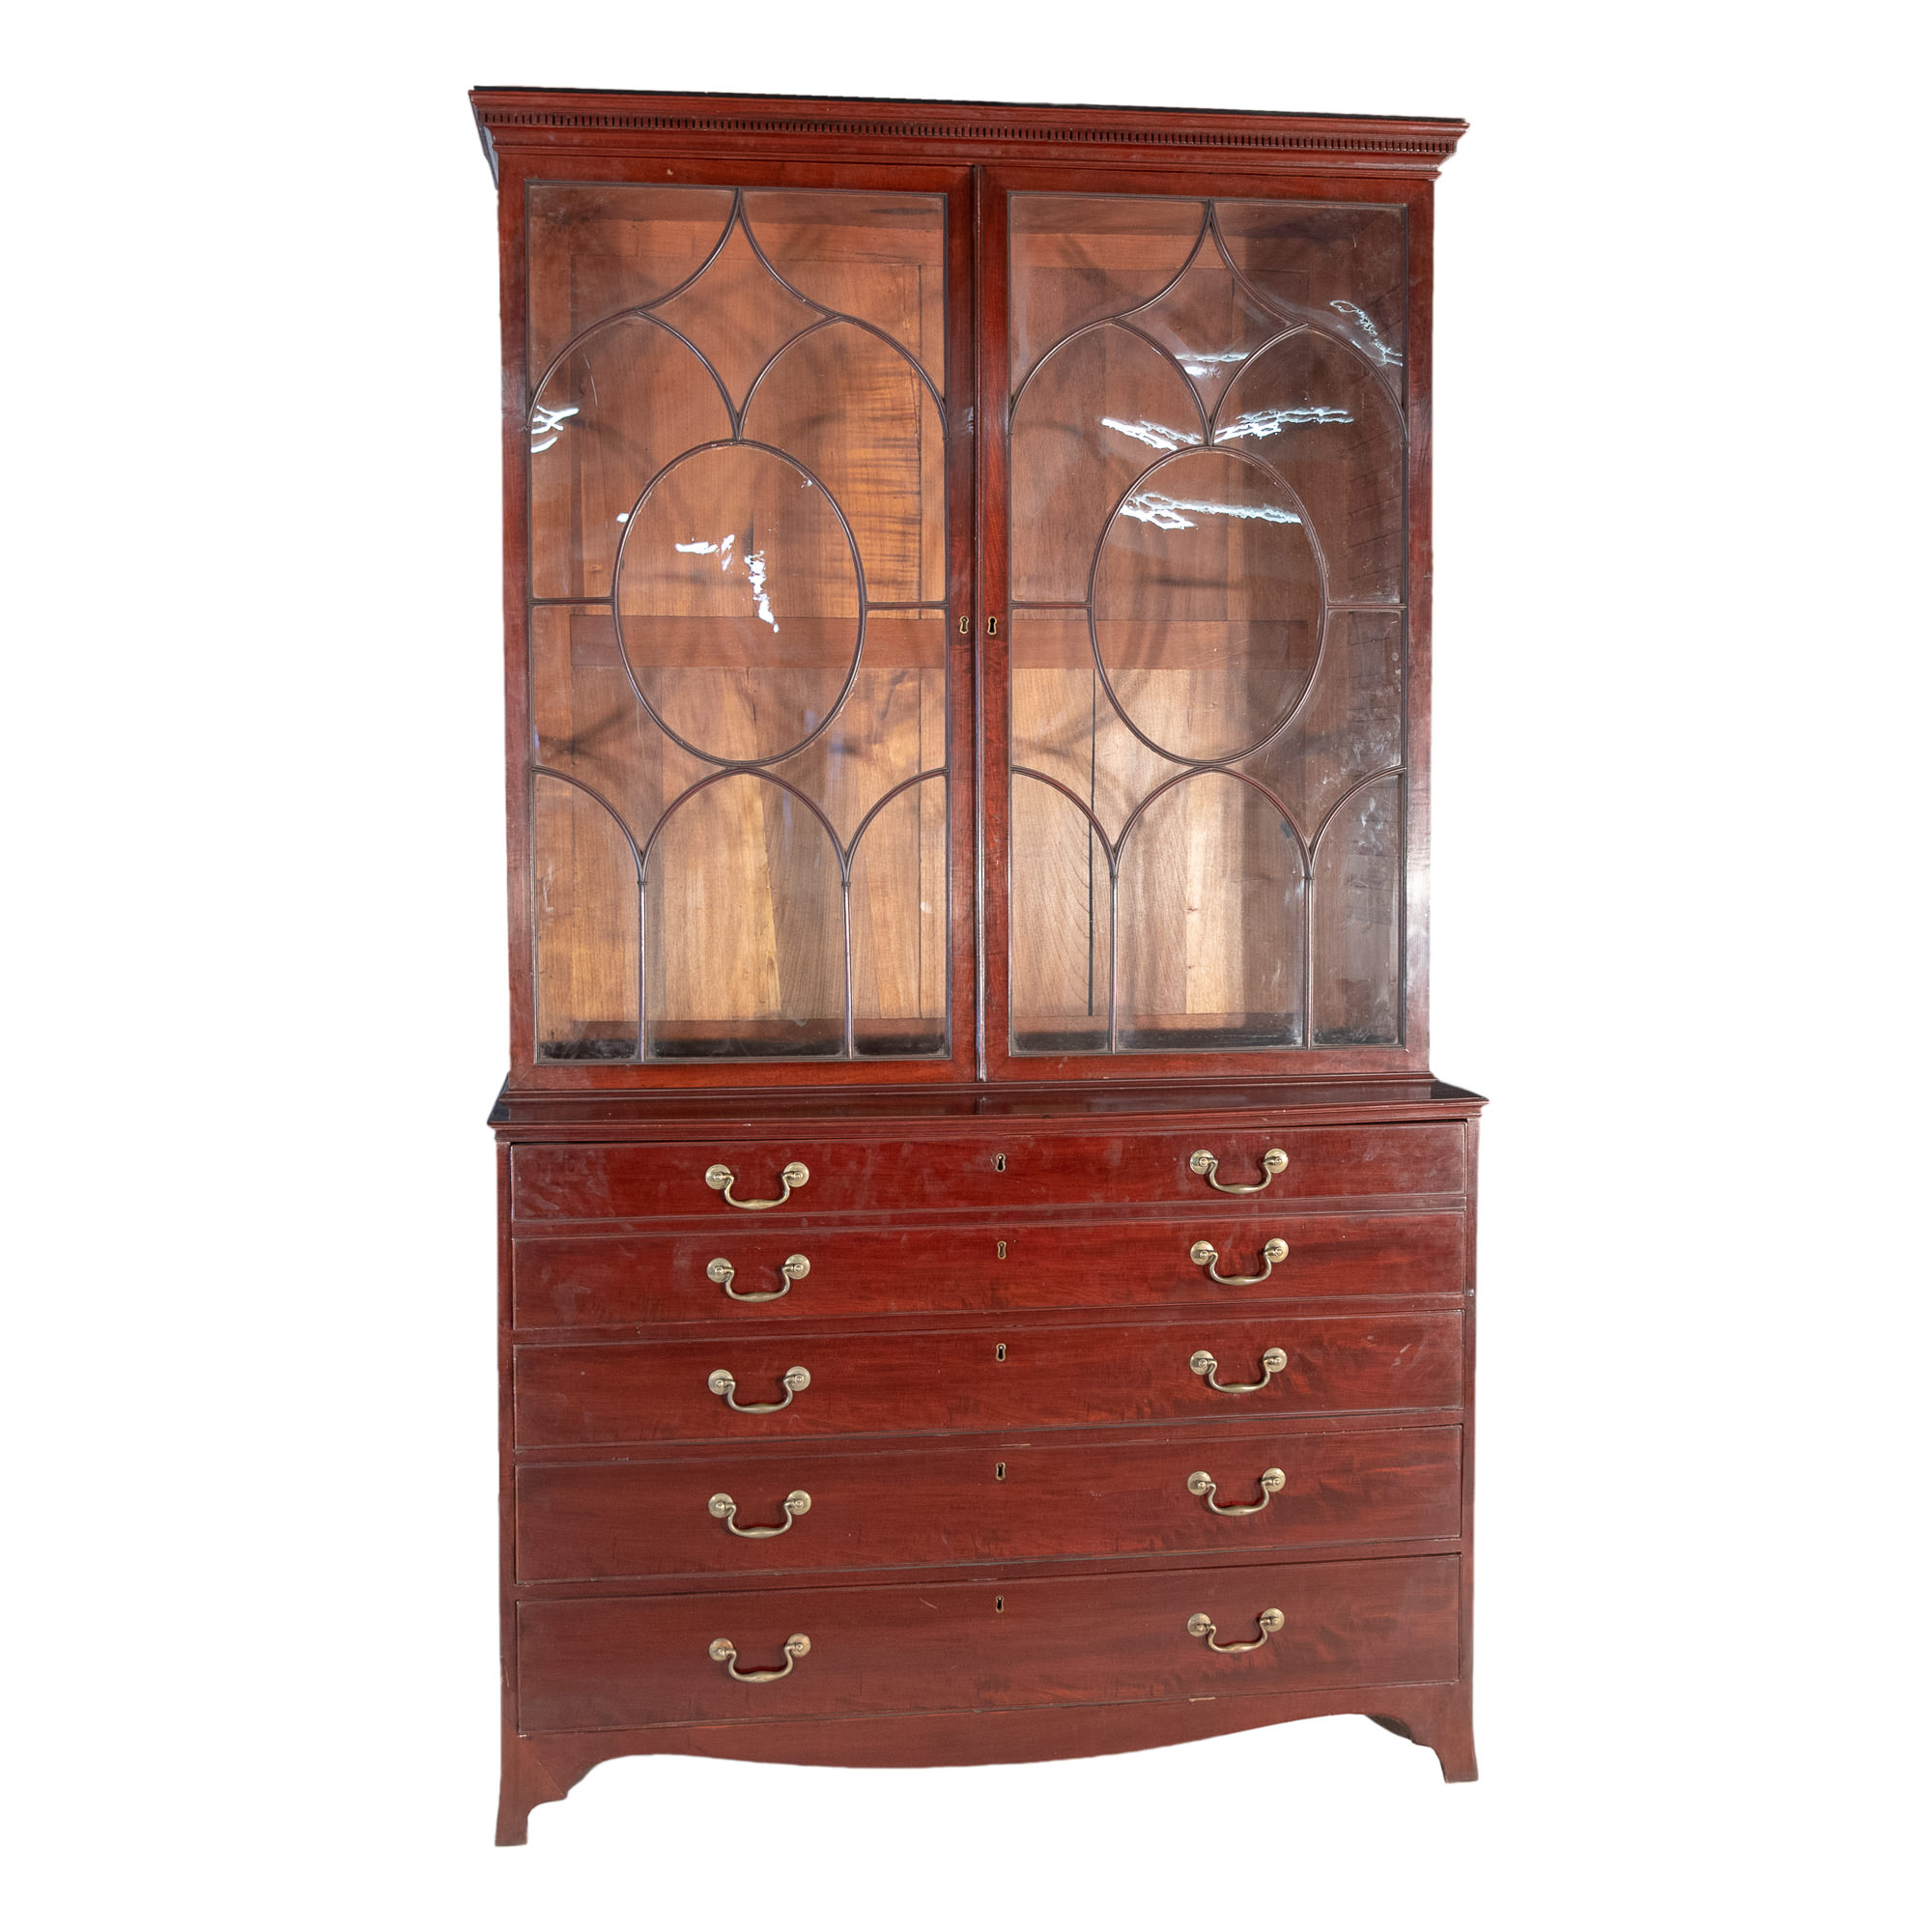 'Large George III Mahogany Secretaire Bookcase with Astragal Glazing Early 19th Century '